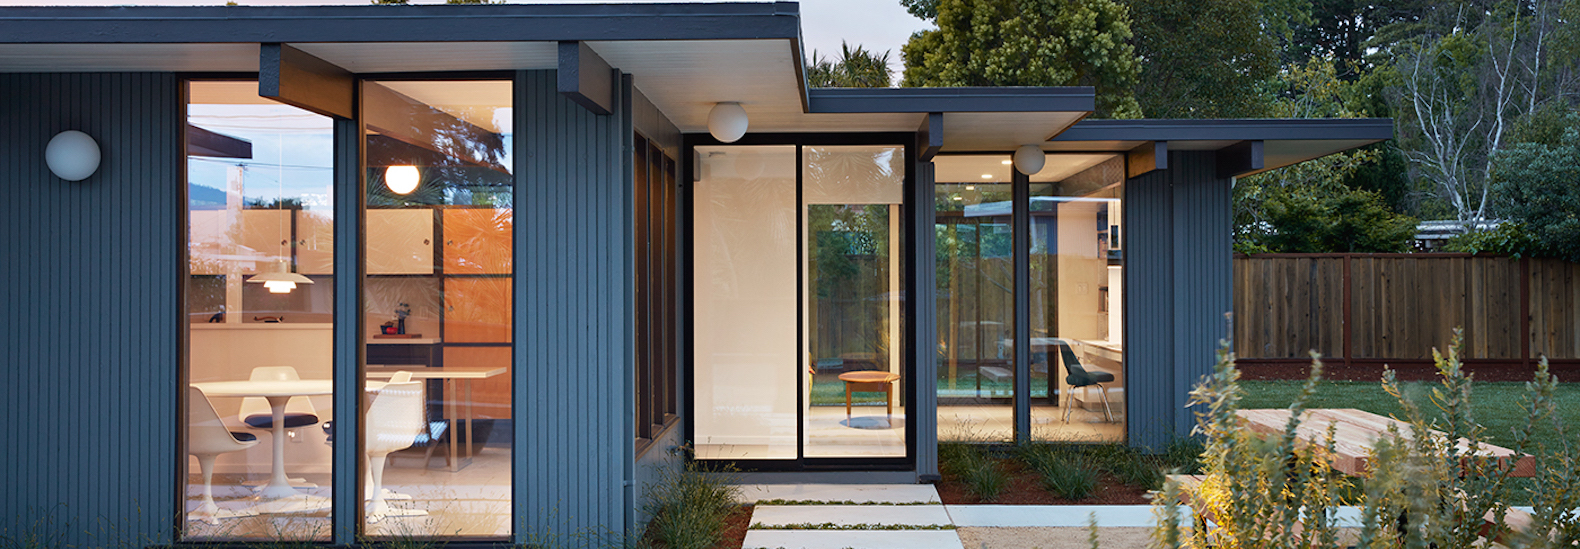 Classic Eichler Gets A Tasteful Renovation And Expansion In The Heart Of  Silicon Valley